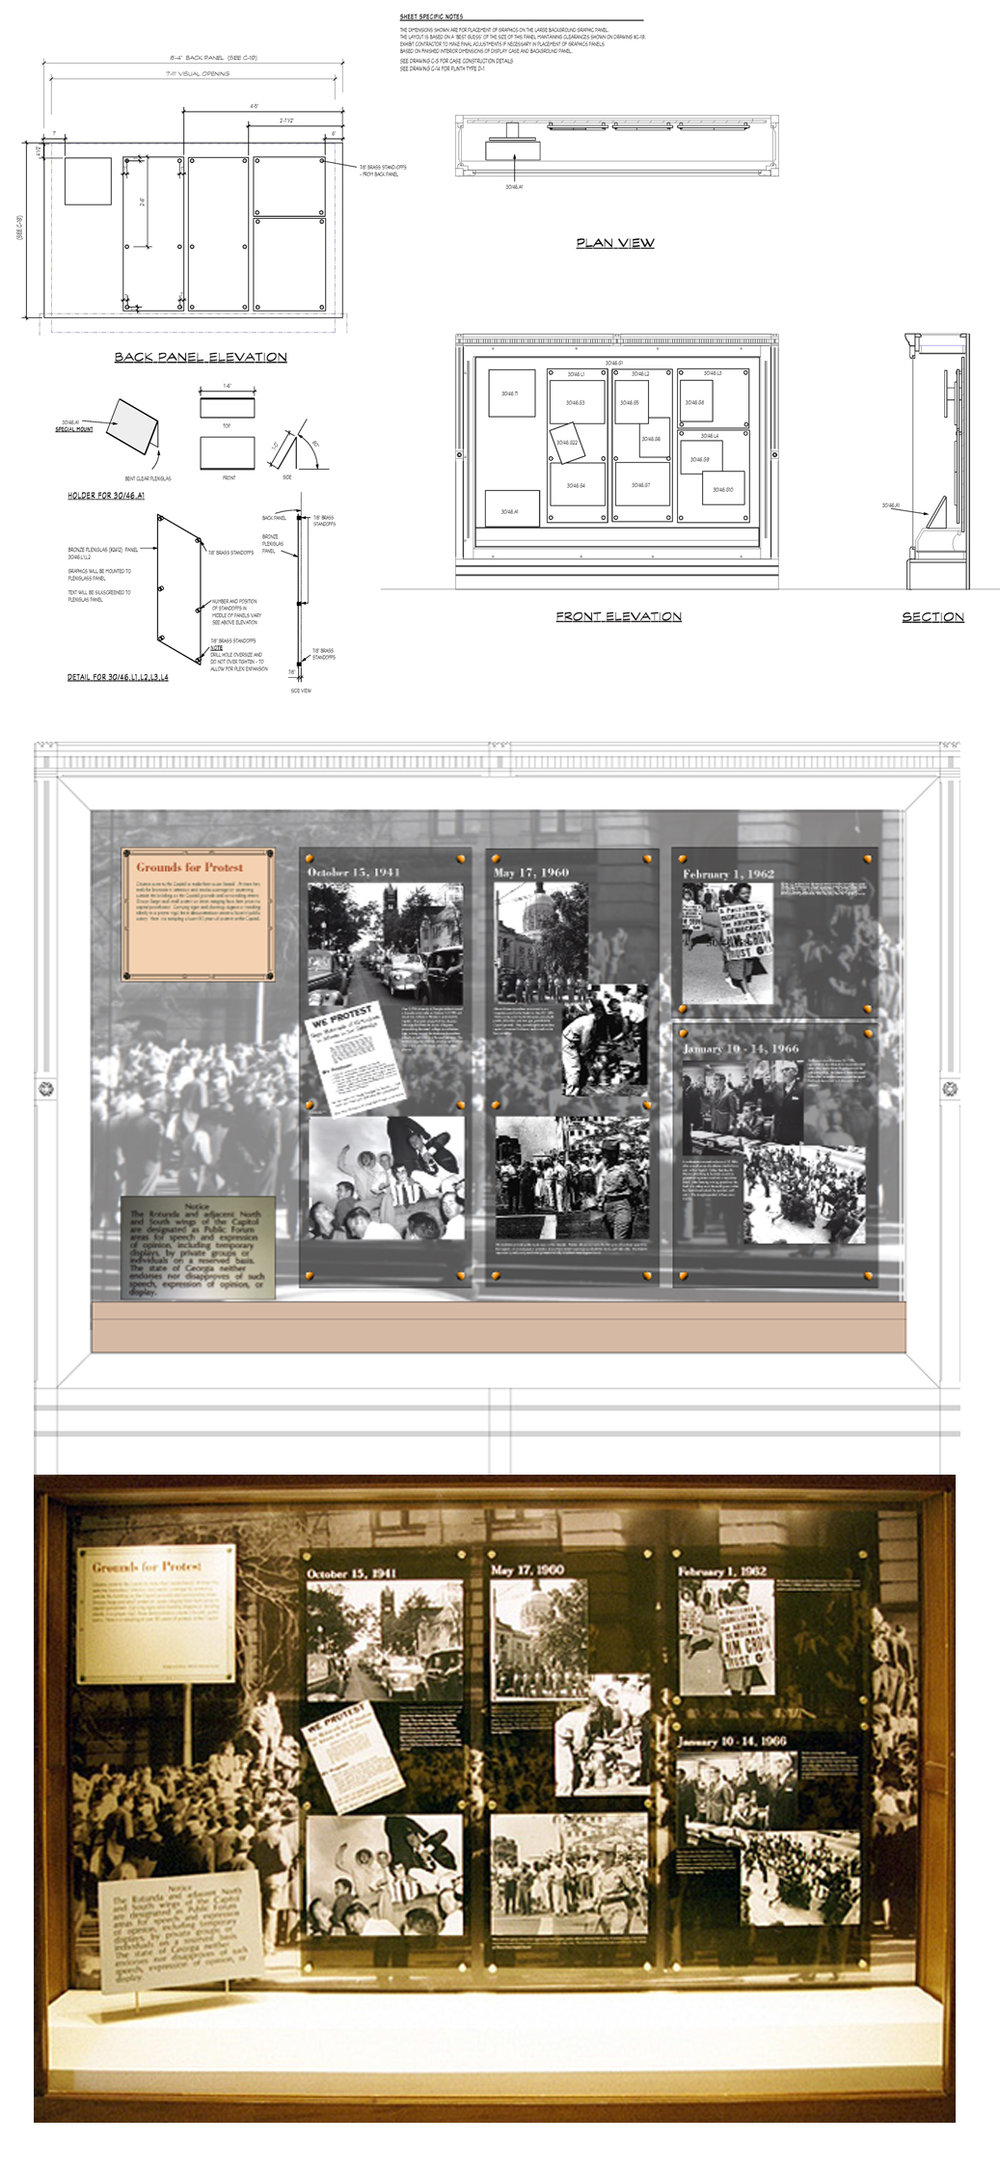 Case detail, layout, and finished photo for 1 of 2 cases related to citizen protests.